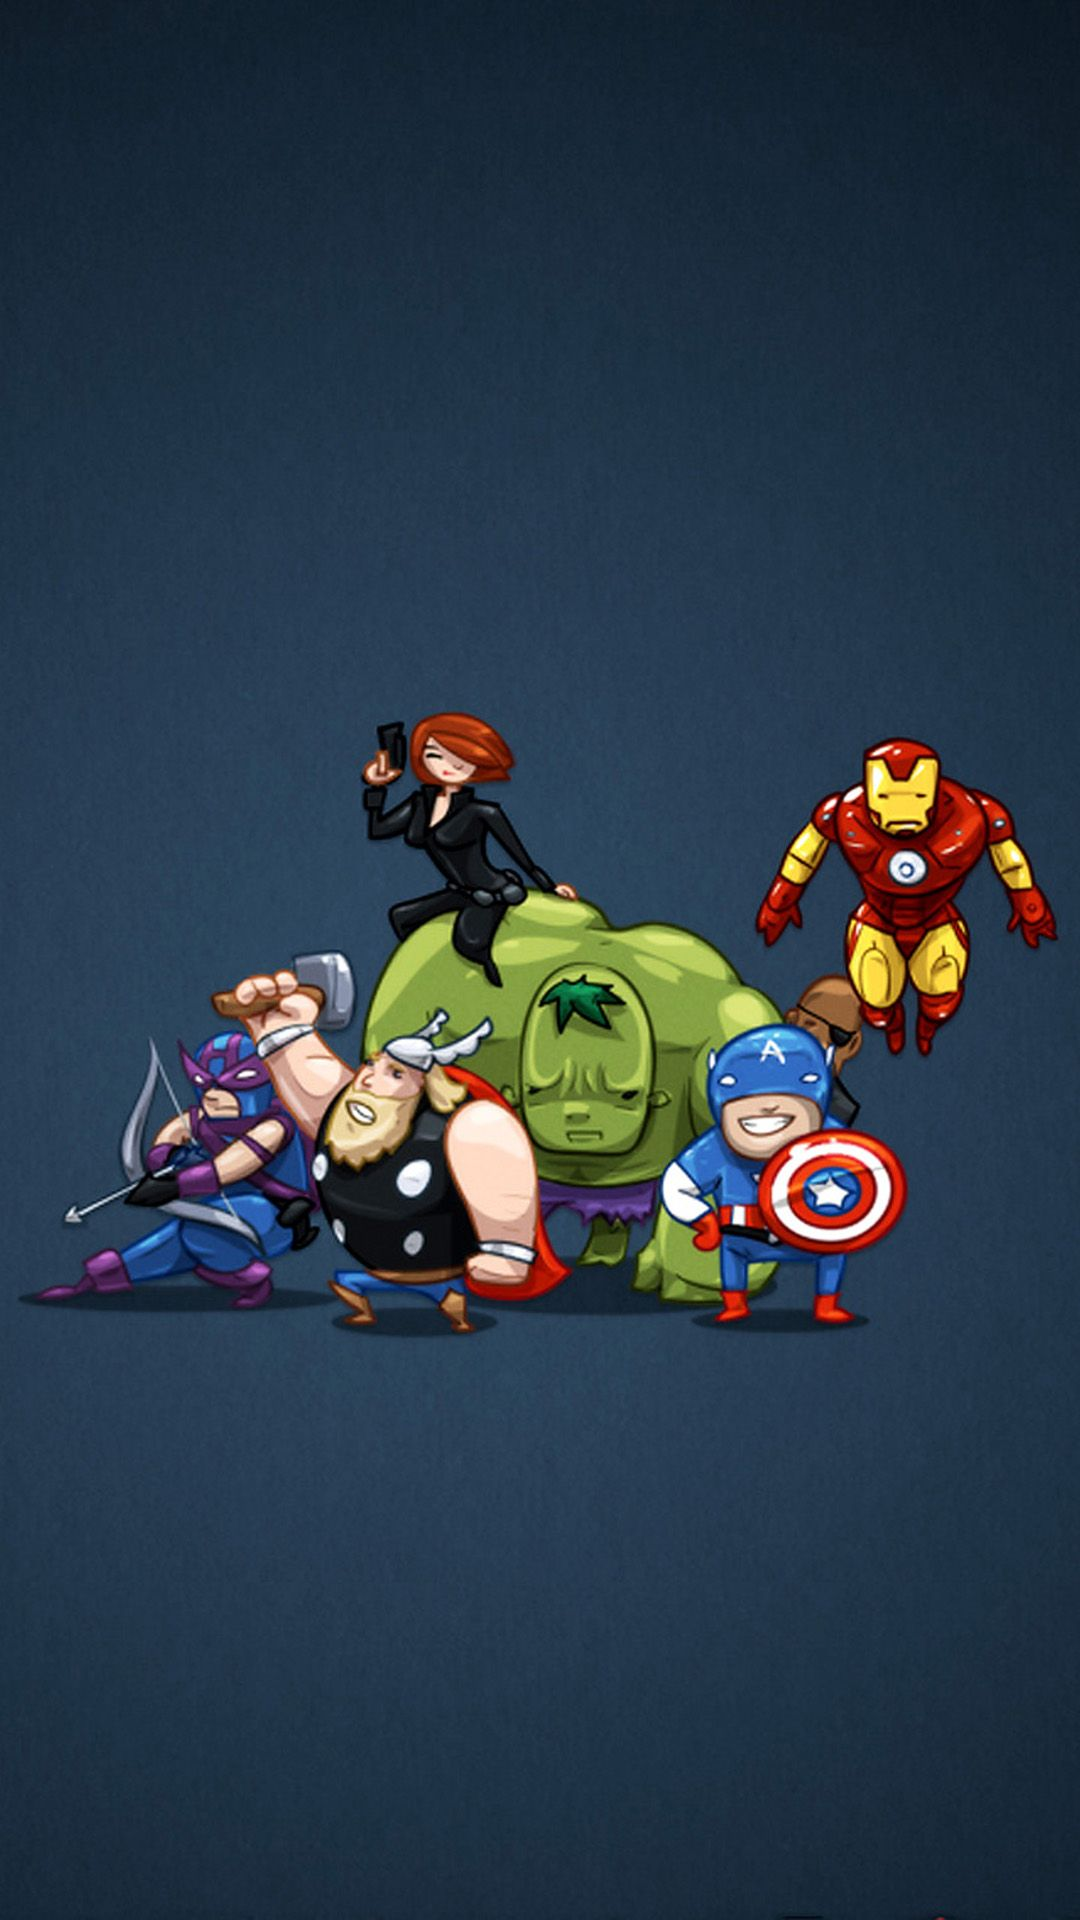 Movie Wallpapers For Samsung Galaxy S5 174 Superhero Wallpaper Iphone Avengers Wallpaper Hero Wallpaper